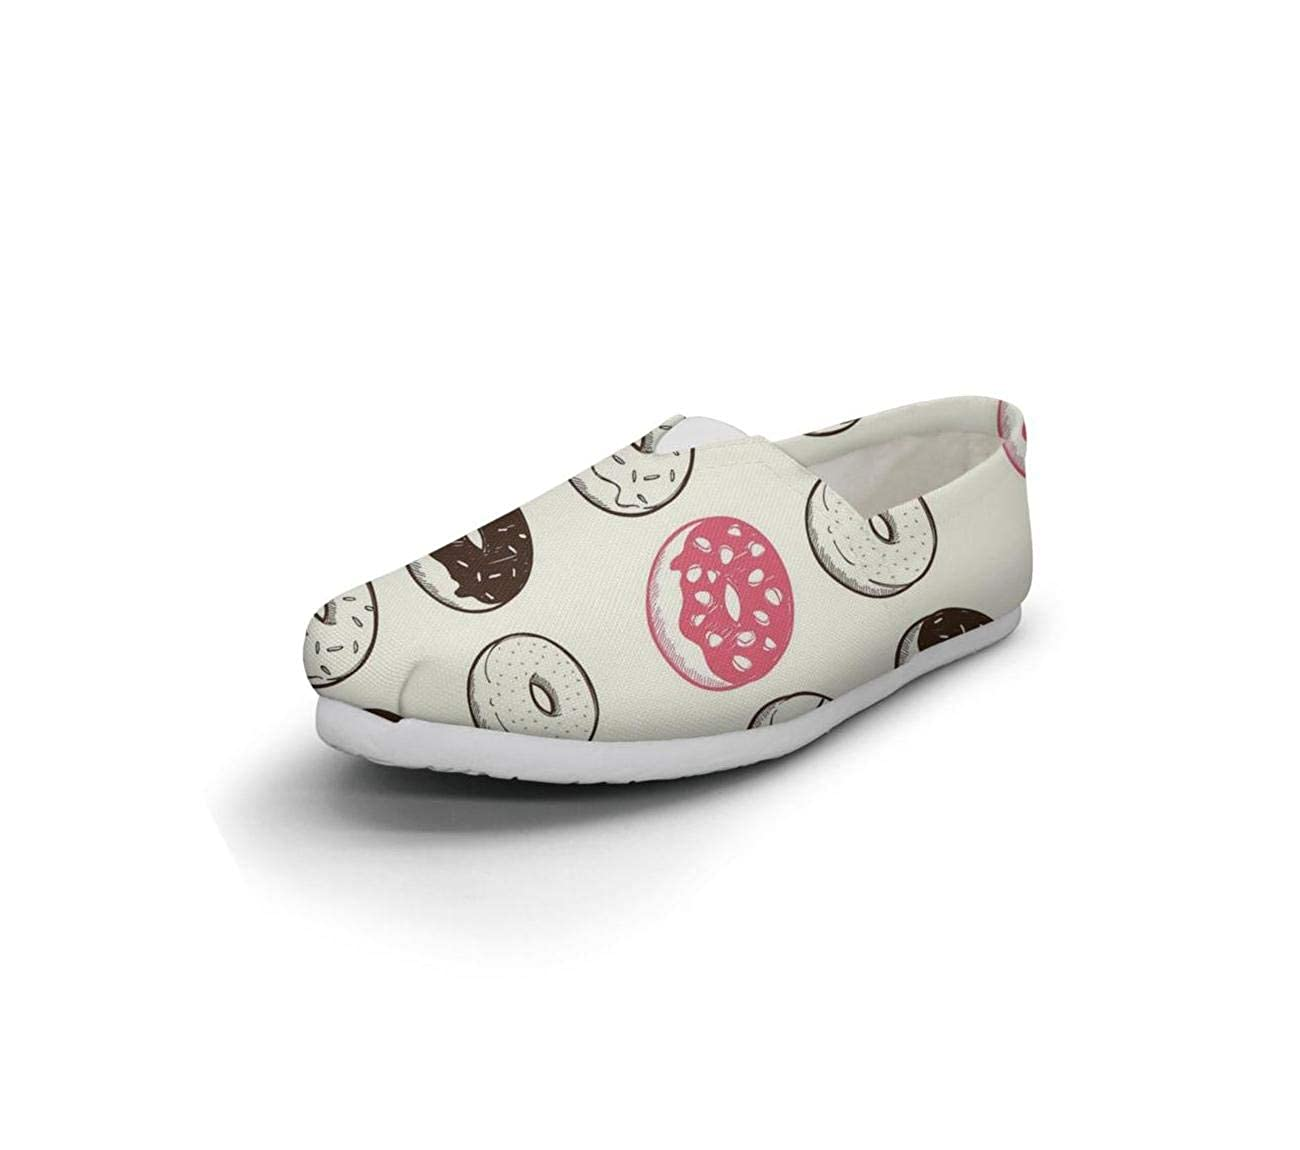 Chocolate Donut Repeat Womens Leisure Shoes for Womens Lace Ups Shock Absorption